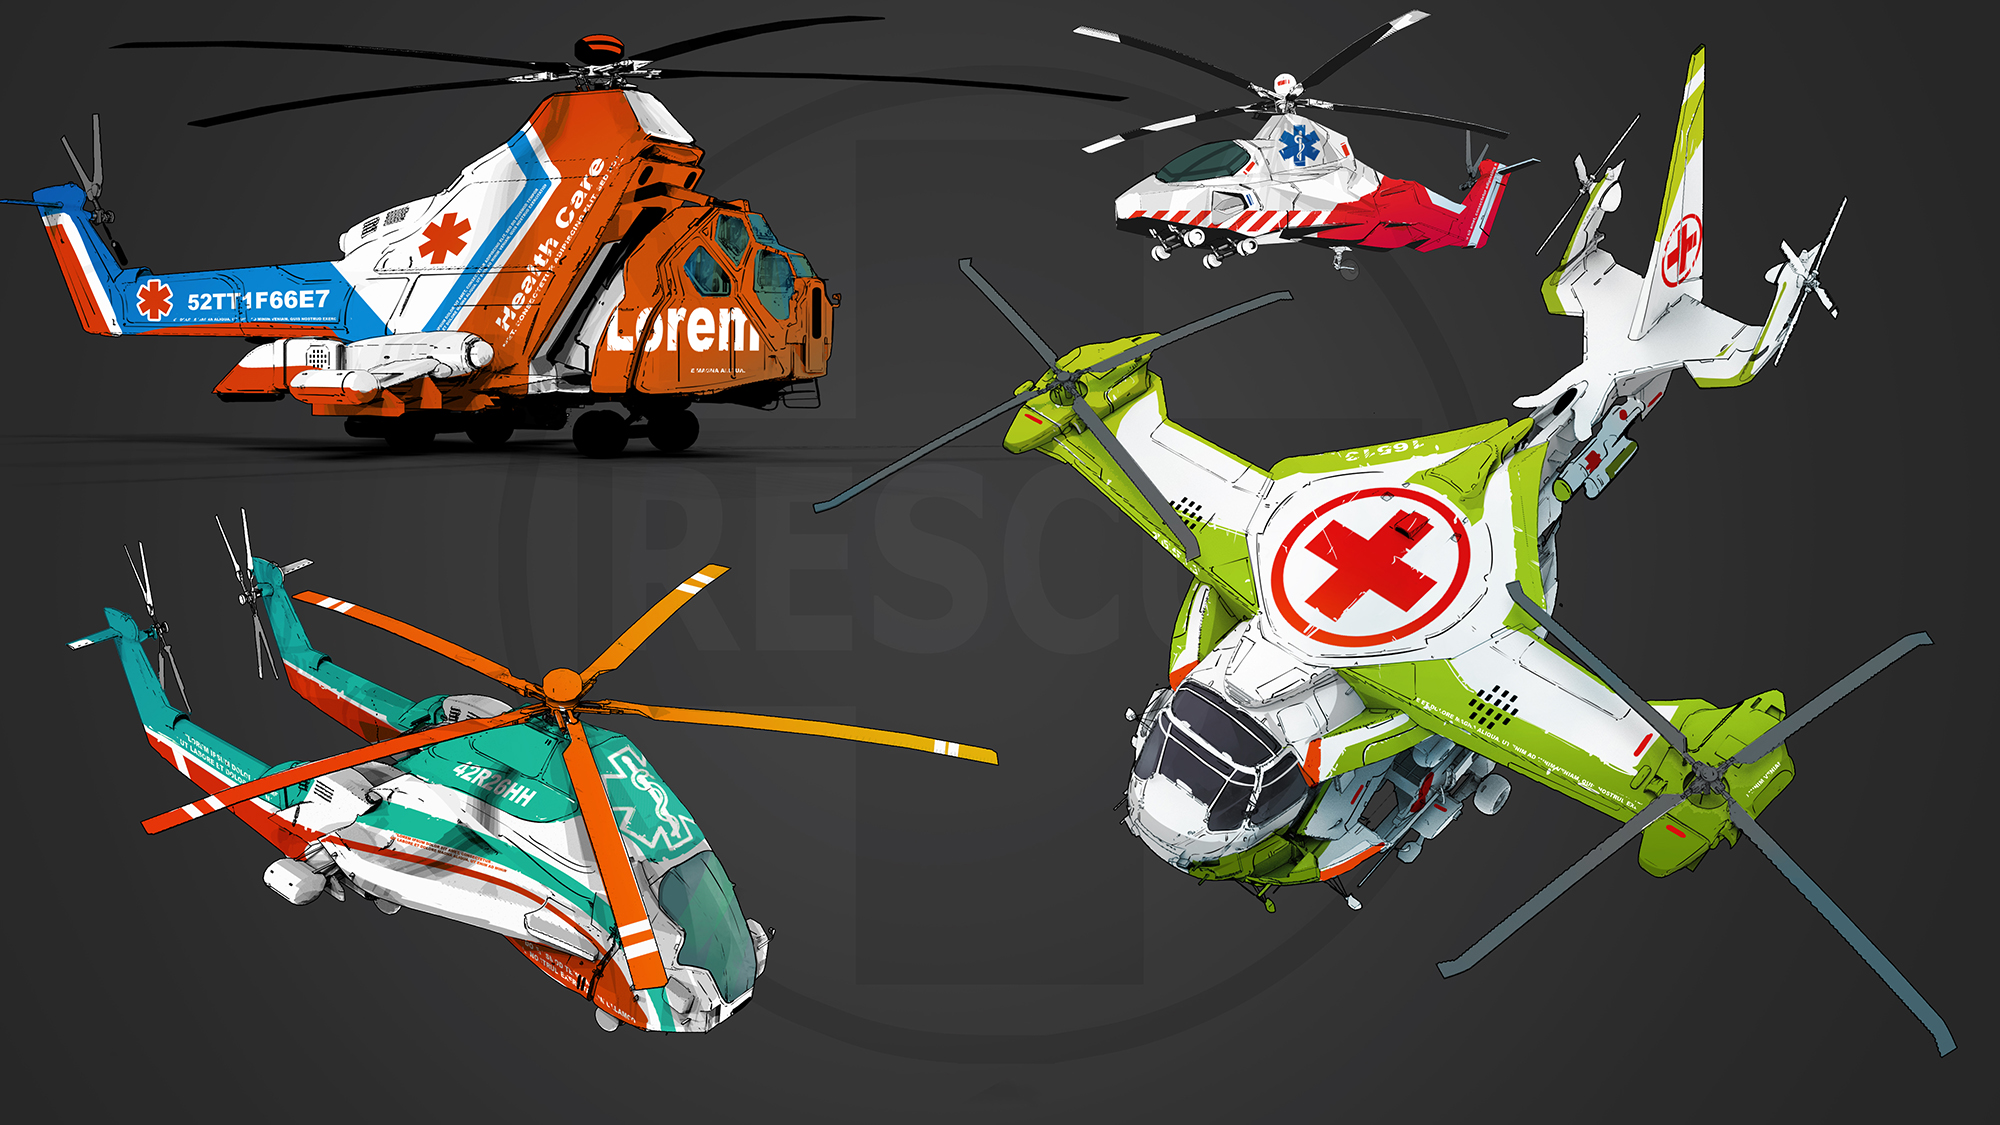 WS51 Helicopters 3.jpg